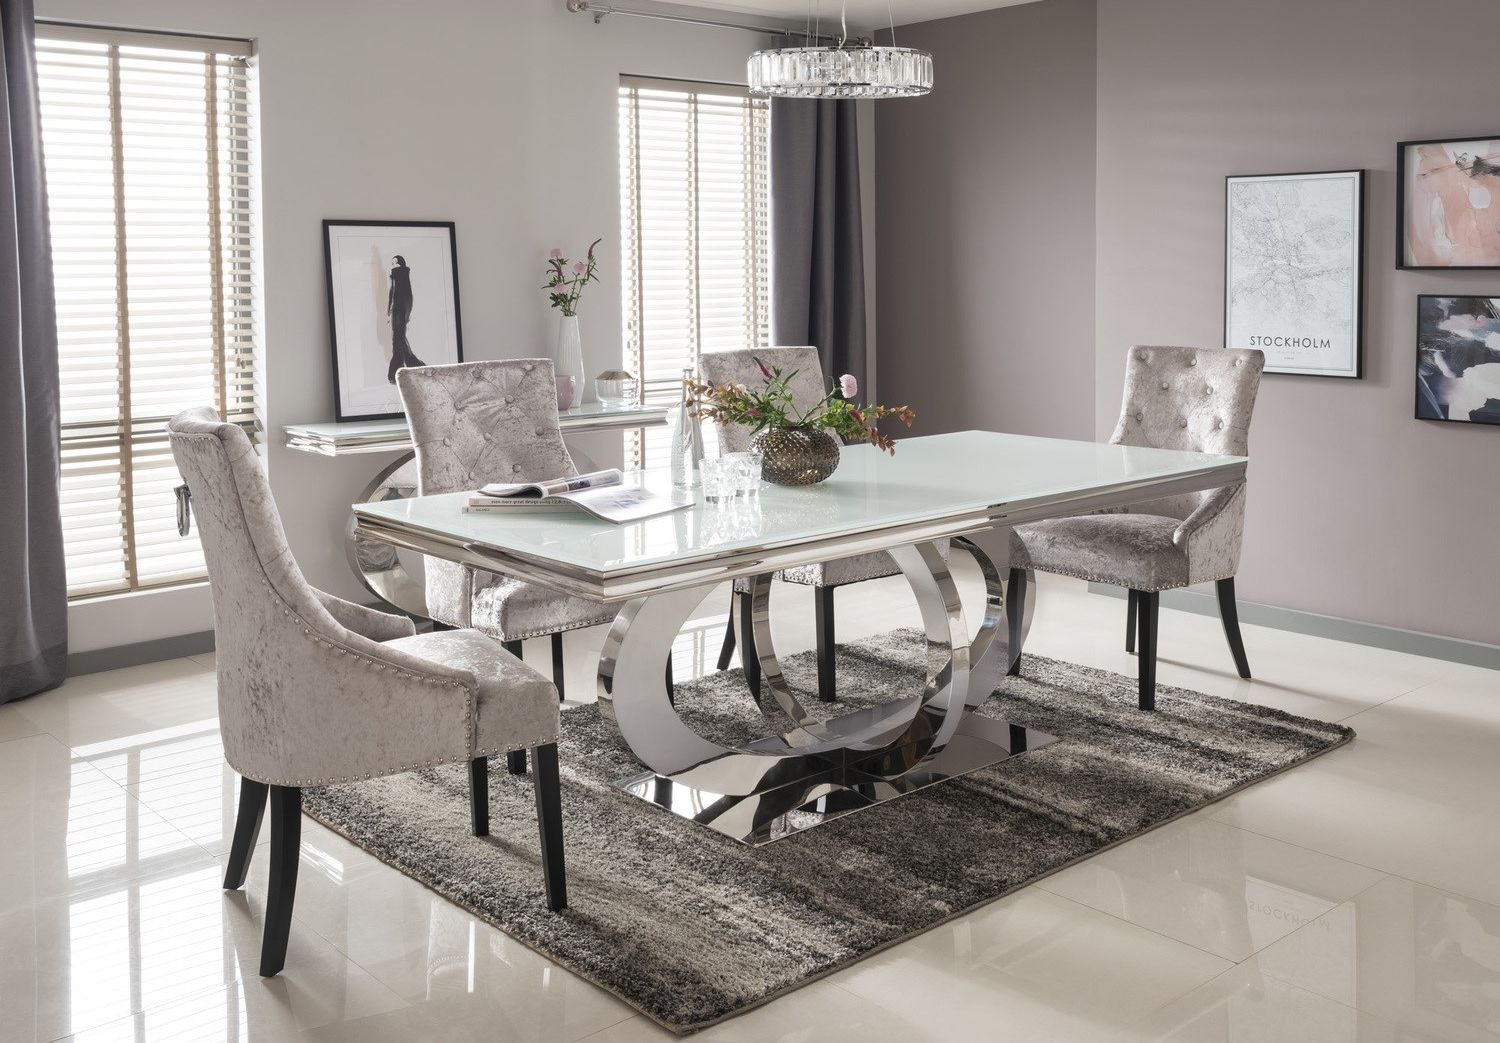 Vida Living Orion White Glass Dining Table 180cm Chrome Dining Table Rectangle Dining Table Glass Top Dining Table